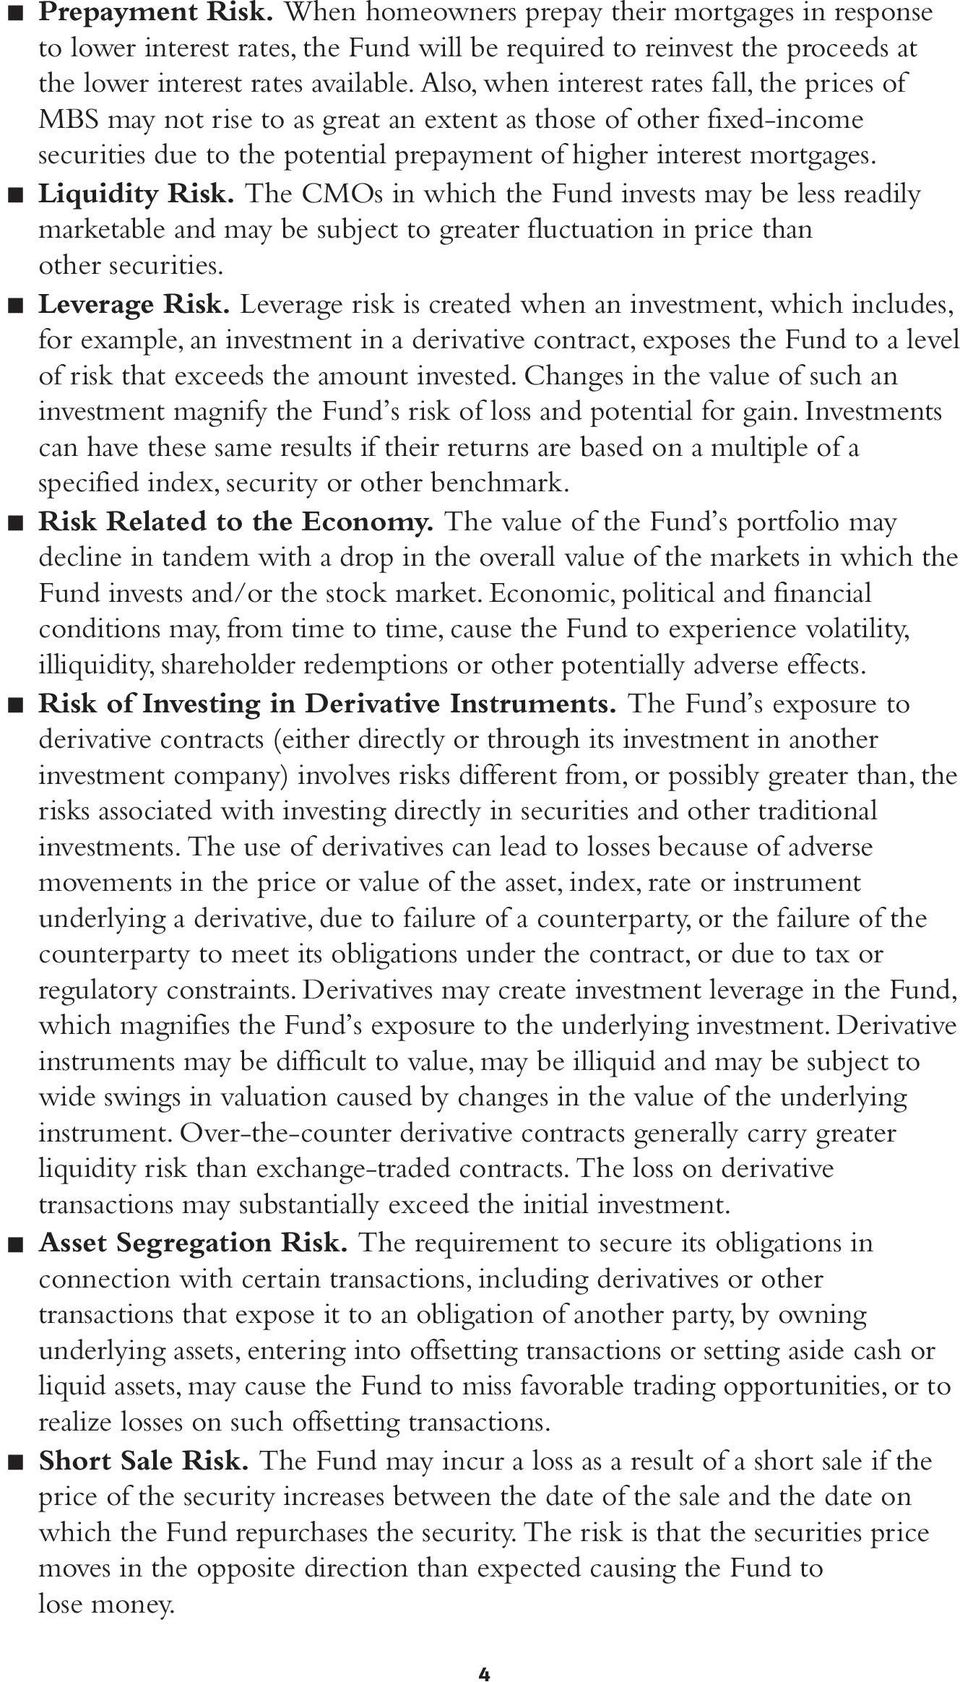 Liquidity Risk. The CMOs in which the Fund invests may be less readily marketable and may be subject to greater fluctuation in price than other securities. Leverage Risk.